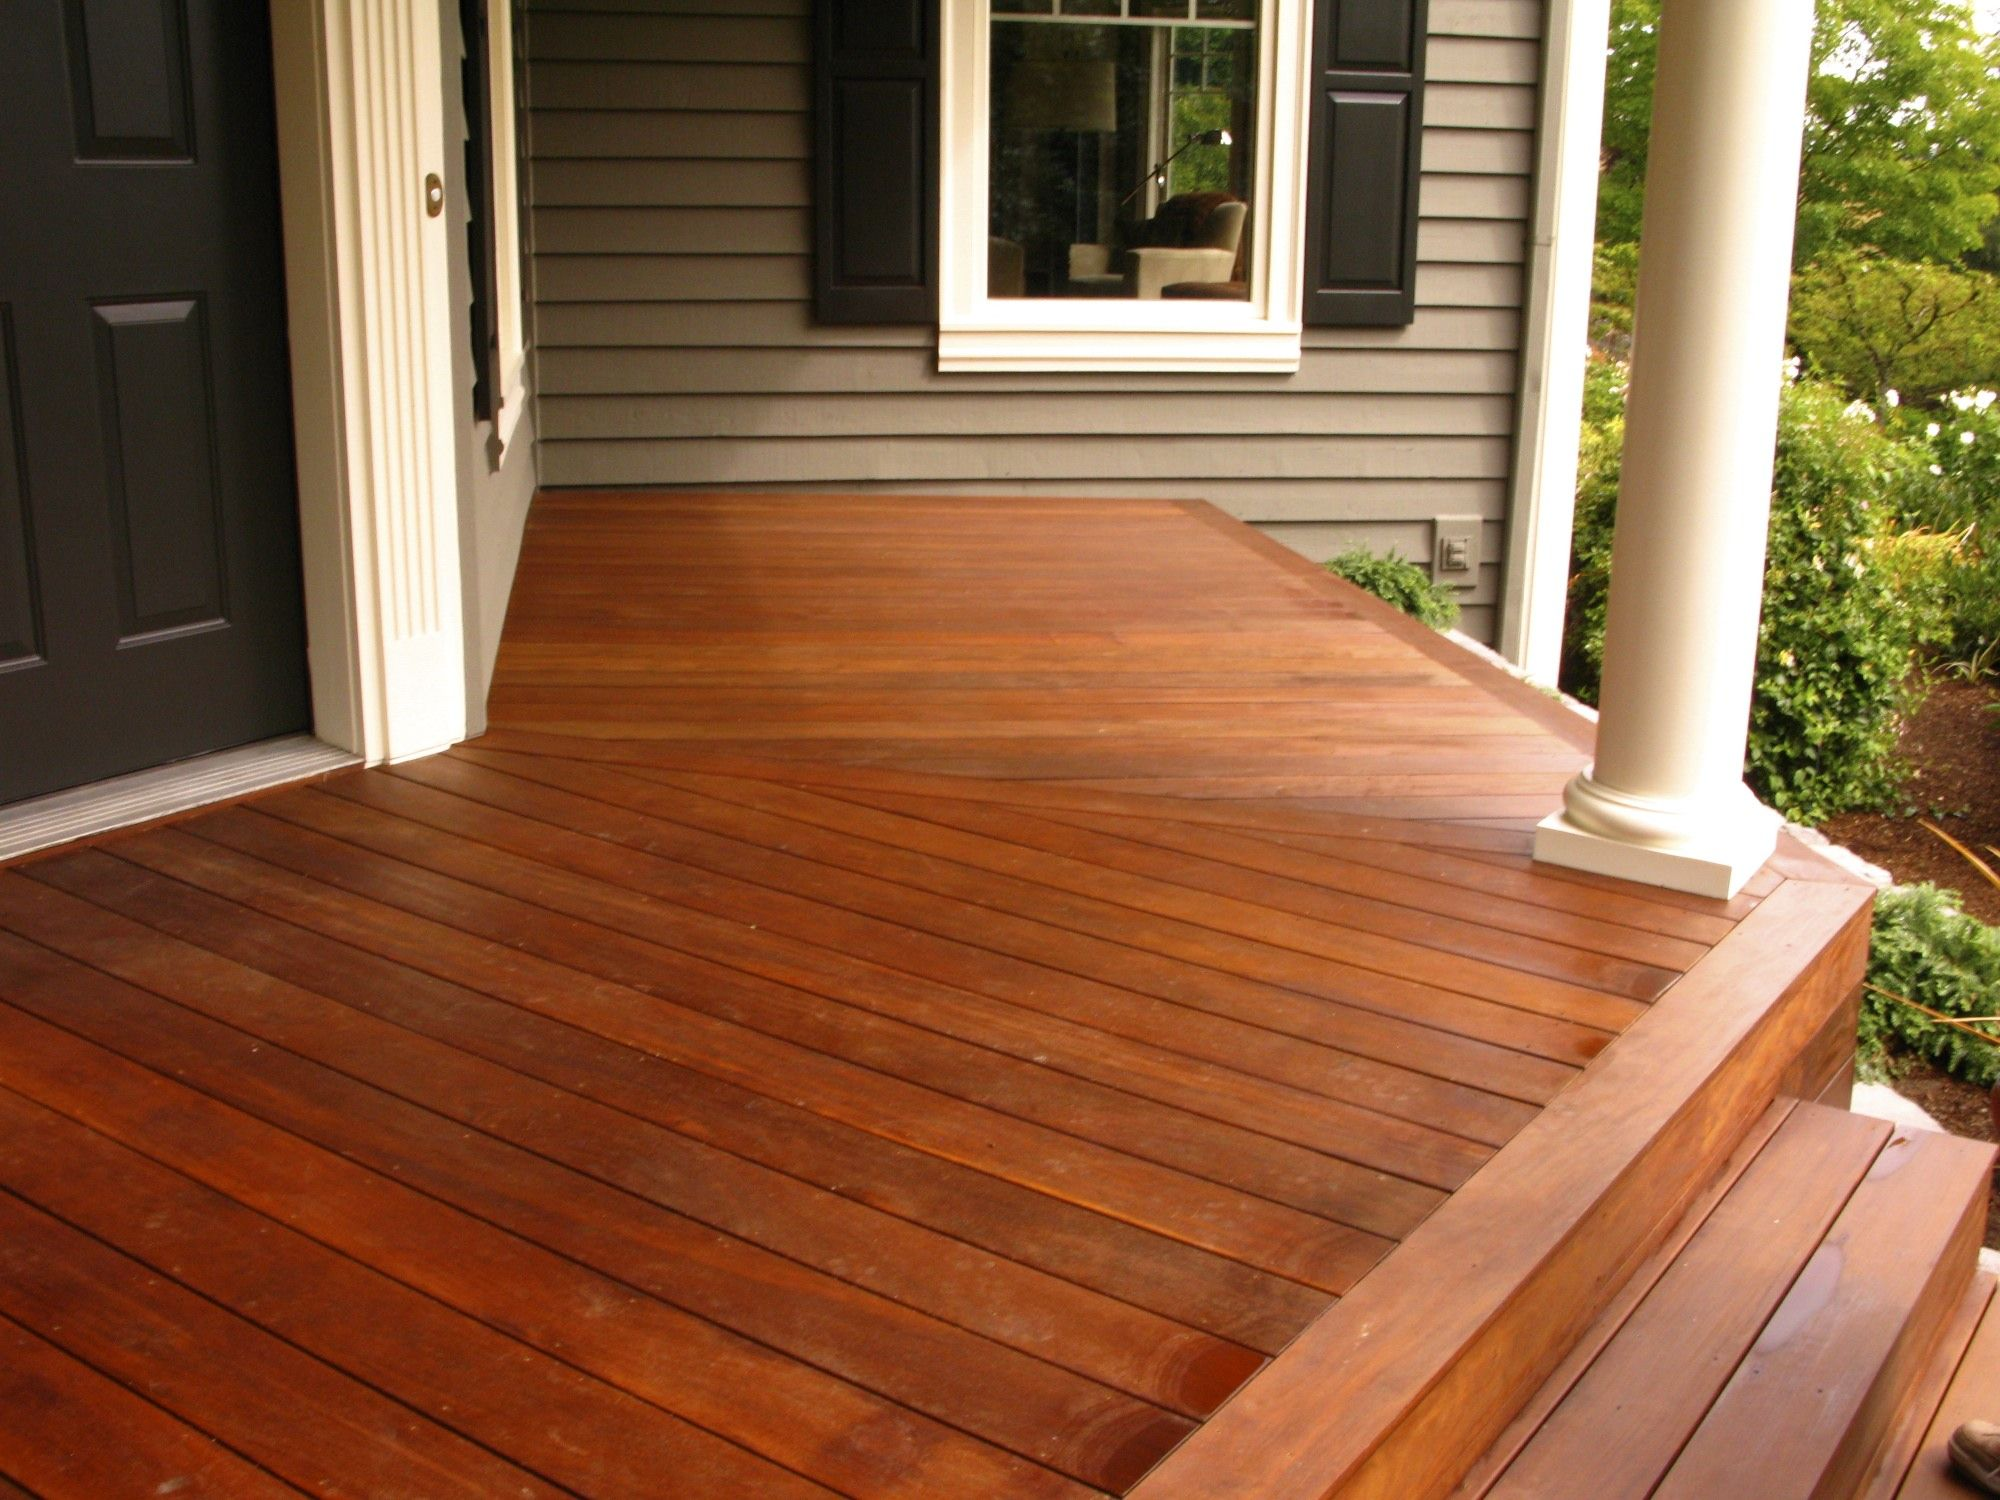 stained cedar deck color | DECK | Pinterest | Deck, Porch and Deck on cabot exterior stain colors, exterior deck doors, exterior wood deck coatings, best deck colors, semi-transparent stain colors, exterior home stain colors, exterior deck paint, exterior deck flooring, exterior olympic stain colors, exterior doors colors, exterior deck products, pool stain colors, exterior stain color chart, woodscapes exterior stain colors, exterior stain colors samples, exterior deck hardware, penofin stain colors, mahogany stain colors, kitchen stain colors, fireplace stain colors,